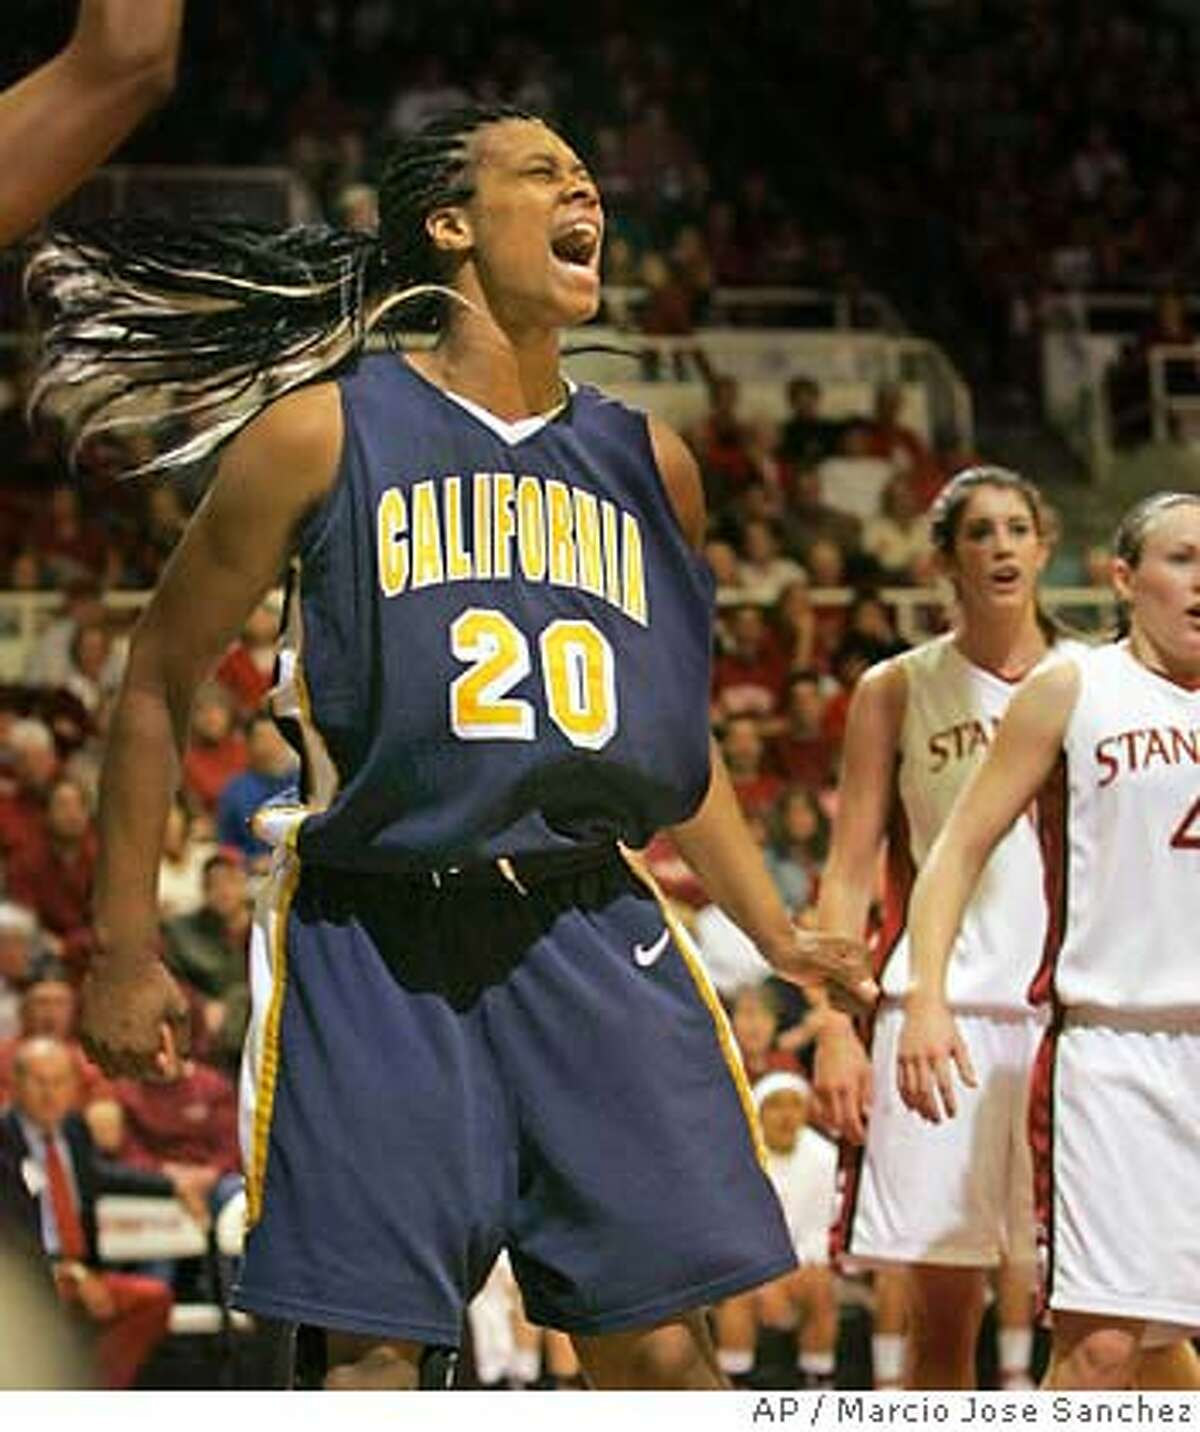 California's Devanei Hampton (20) celebrates after scoring against Stanford in the first half of a college basketball game in Stanford, Calif., Sunday, Feb. 4, 2007.(AP Photo/Marcio Jose Sanchez)